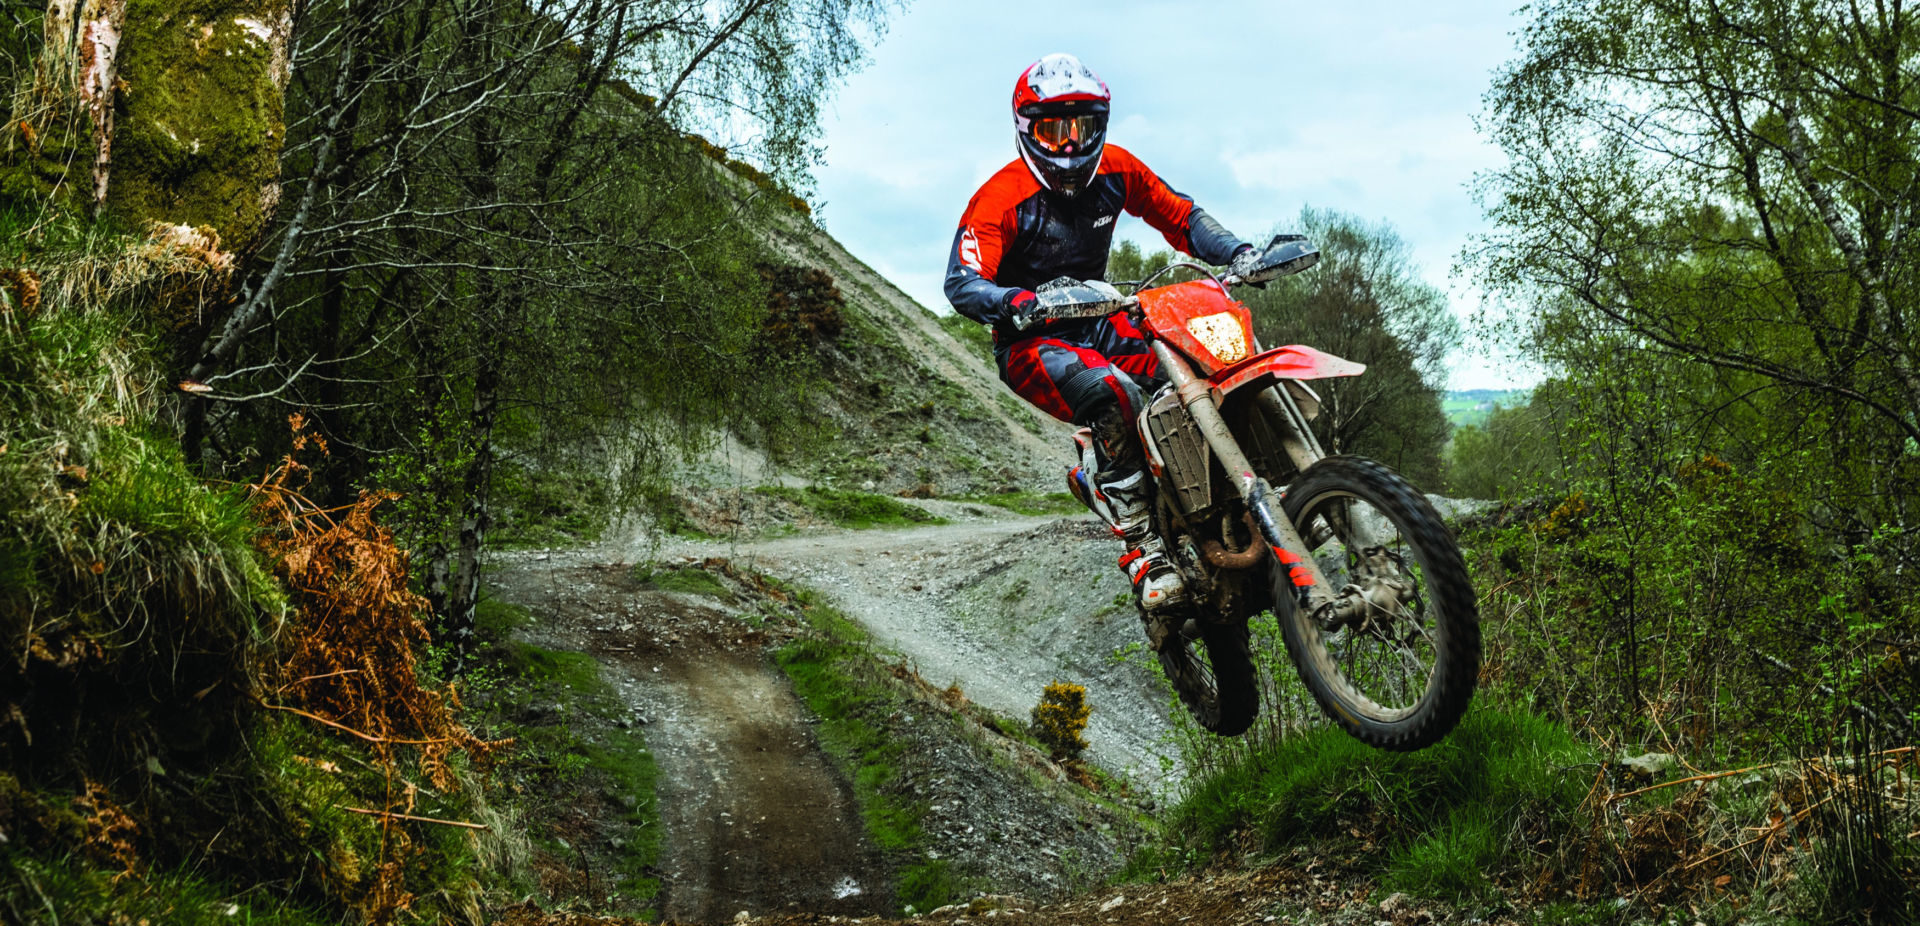 A KTM 450 EXC-F in action. Photo courtesy KTM.